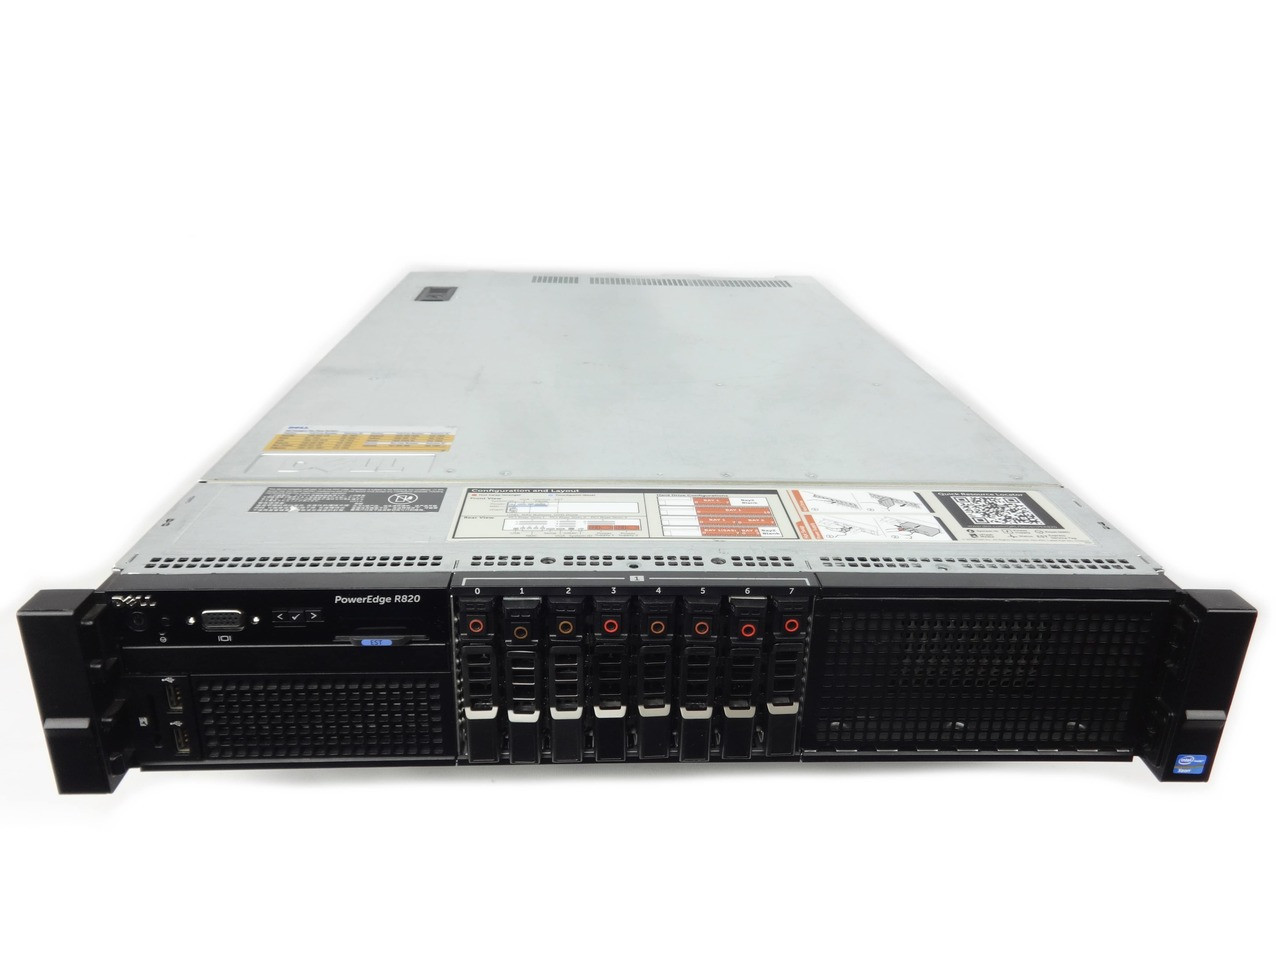 Cables New Dell PowerEdge R830 Barebones Server Chassis With Fans